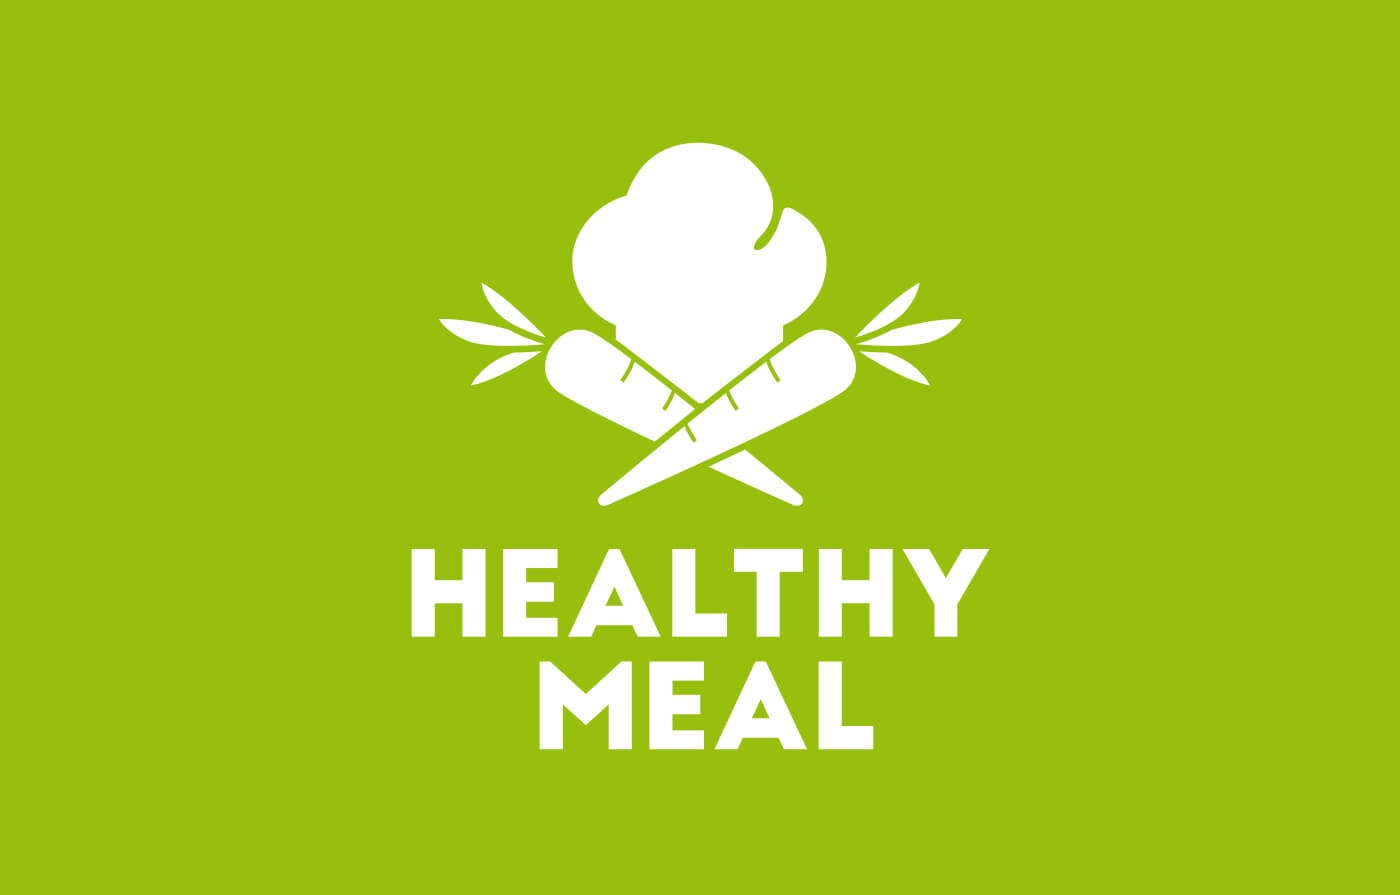 2016 Healthy Meal logo